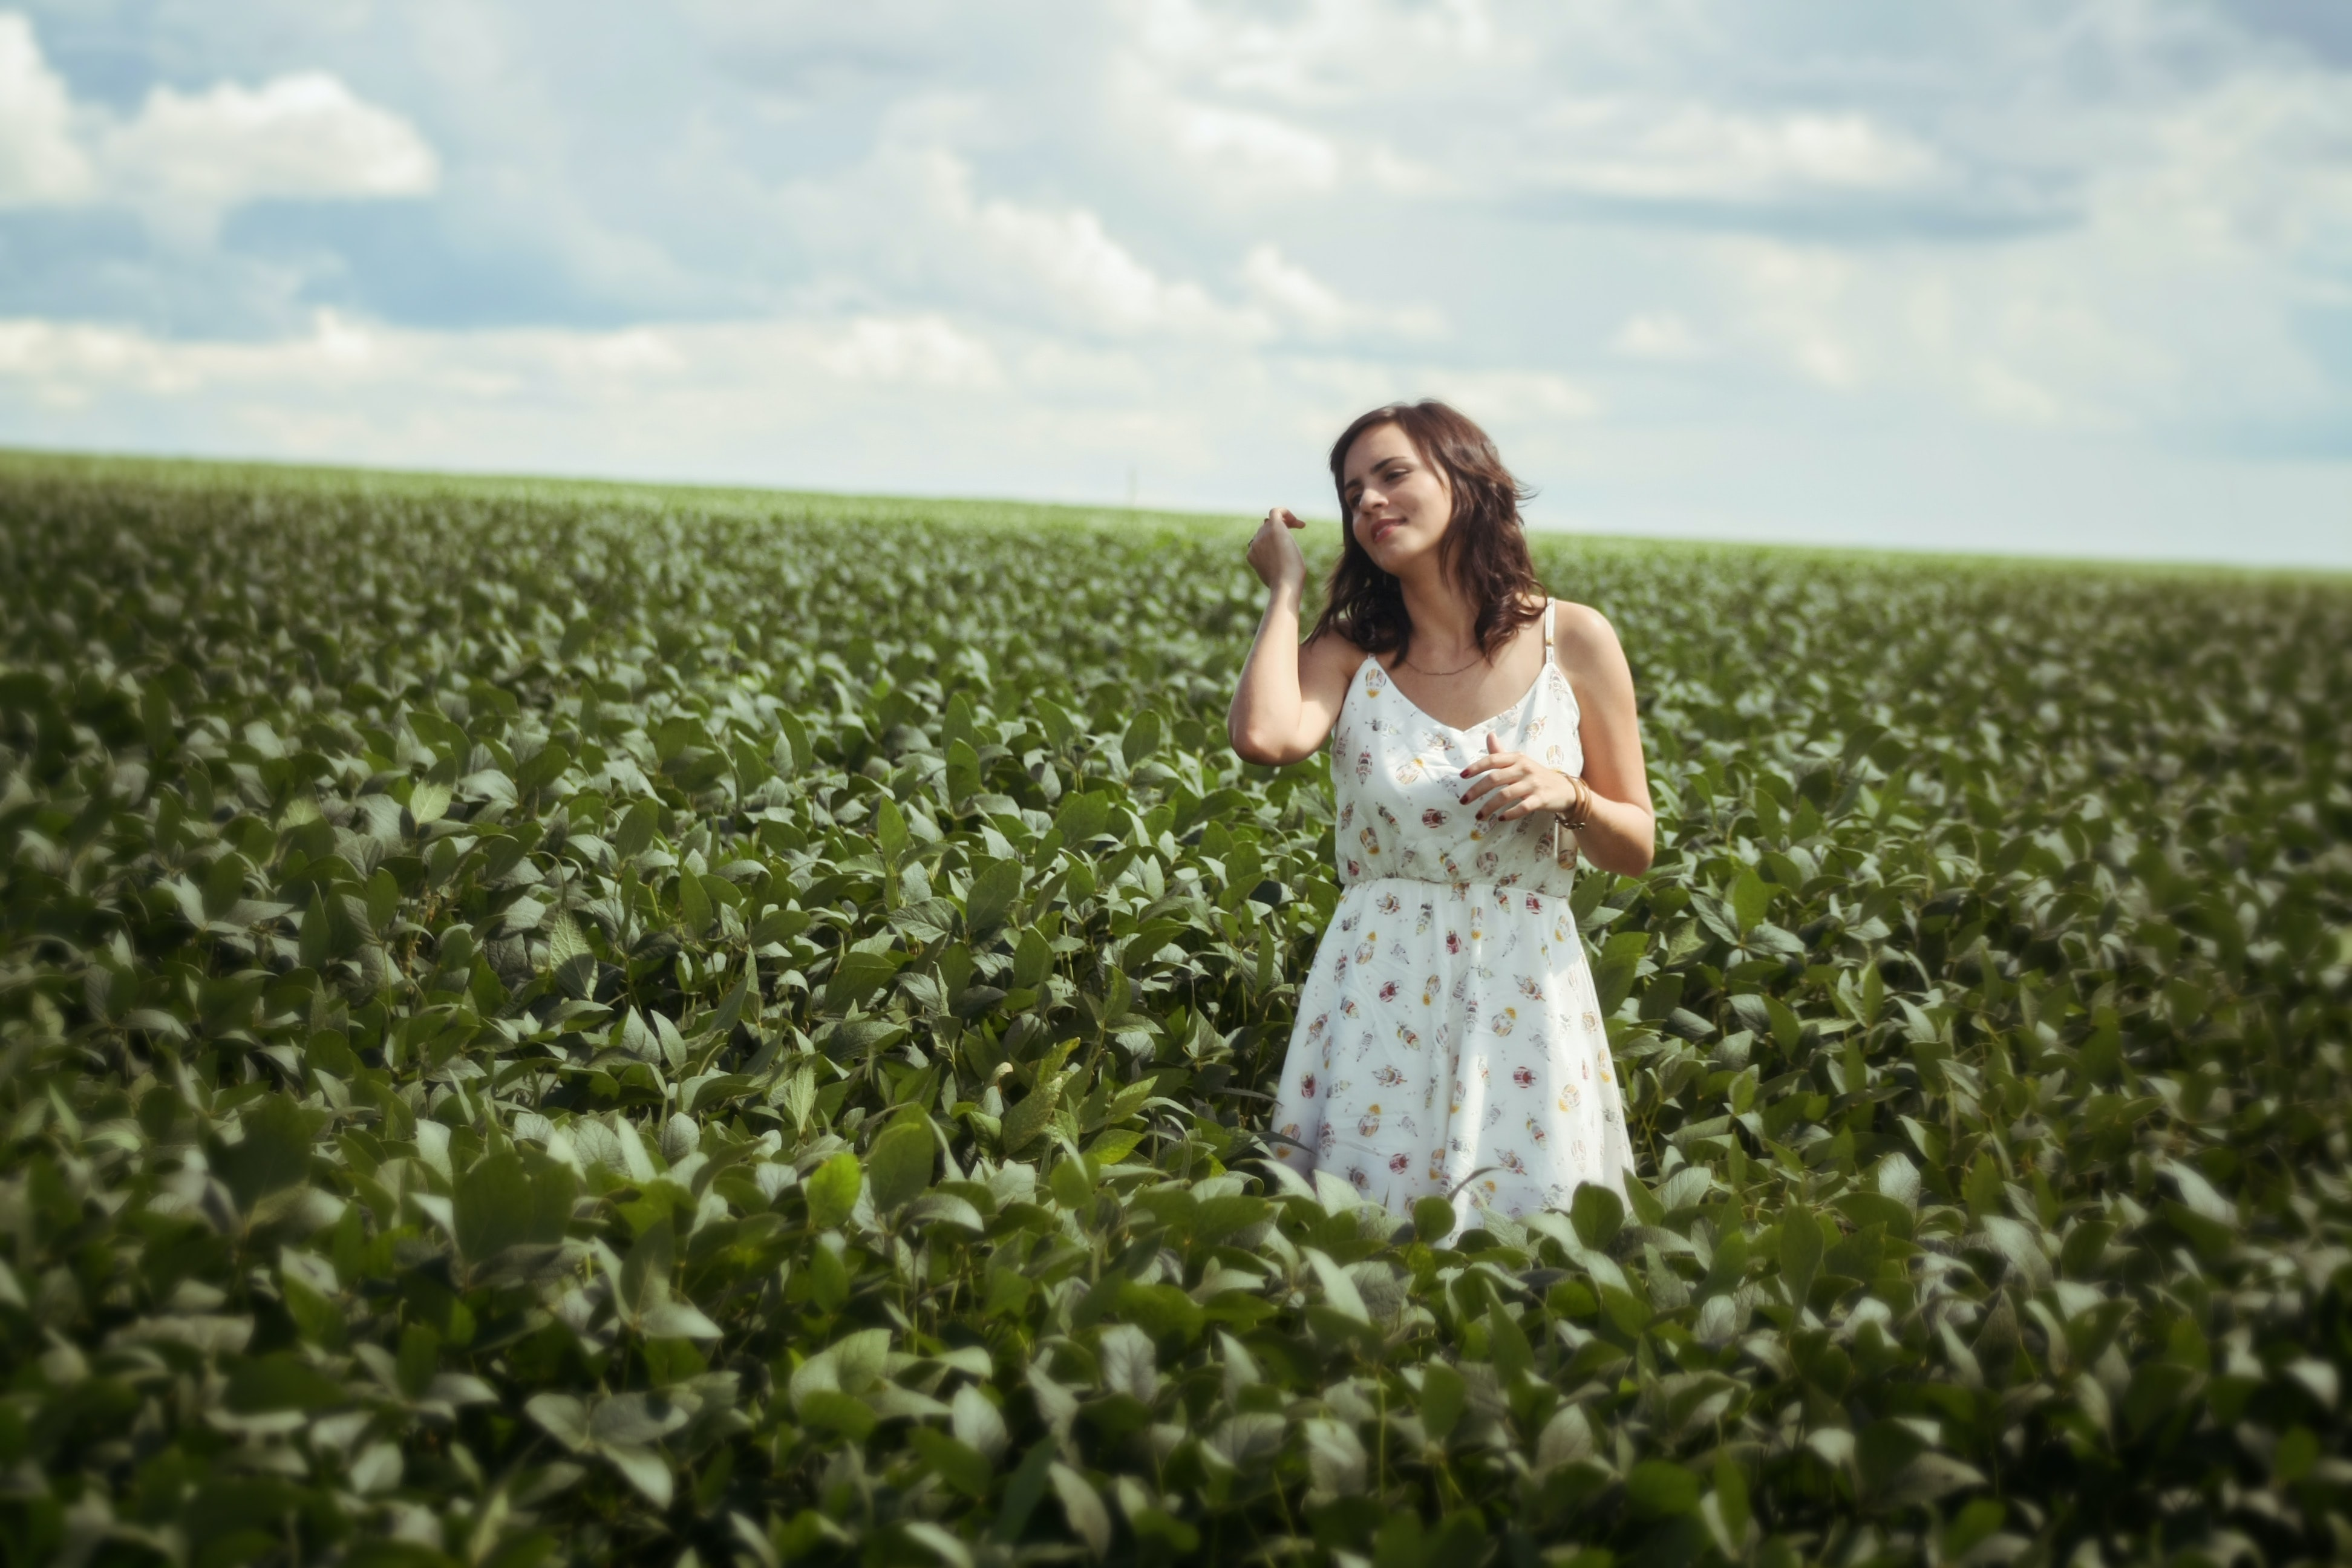 woman standing in green leafed plant field during daytime